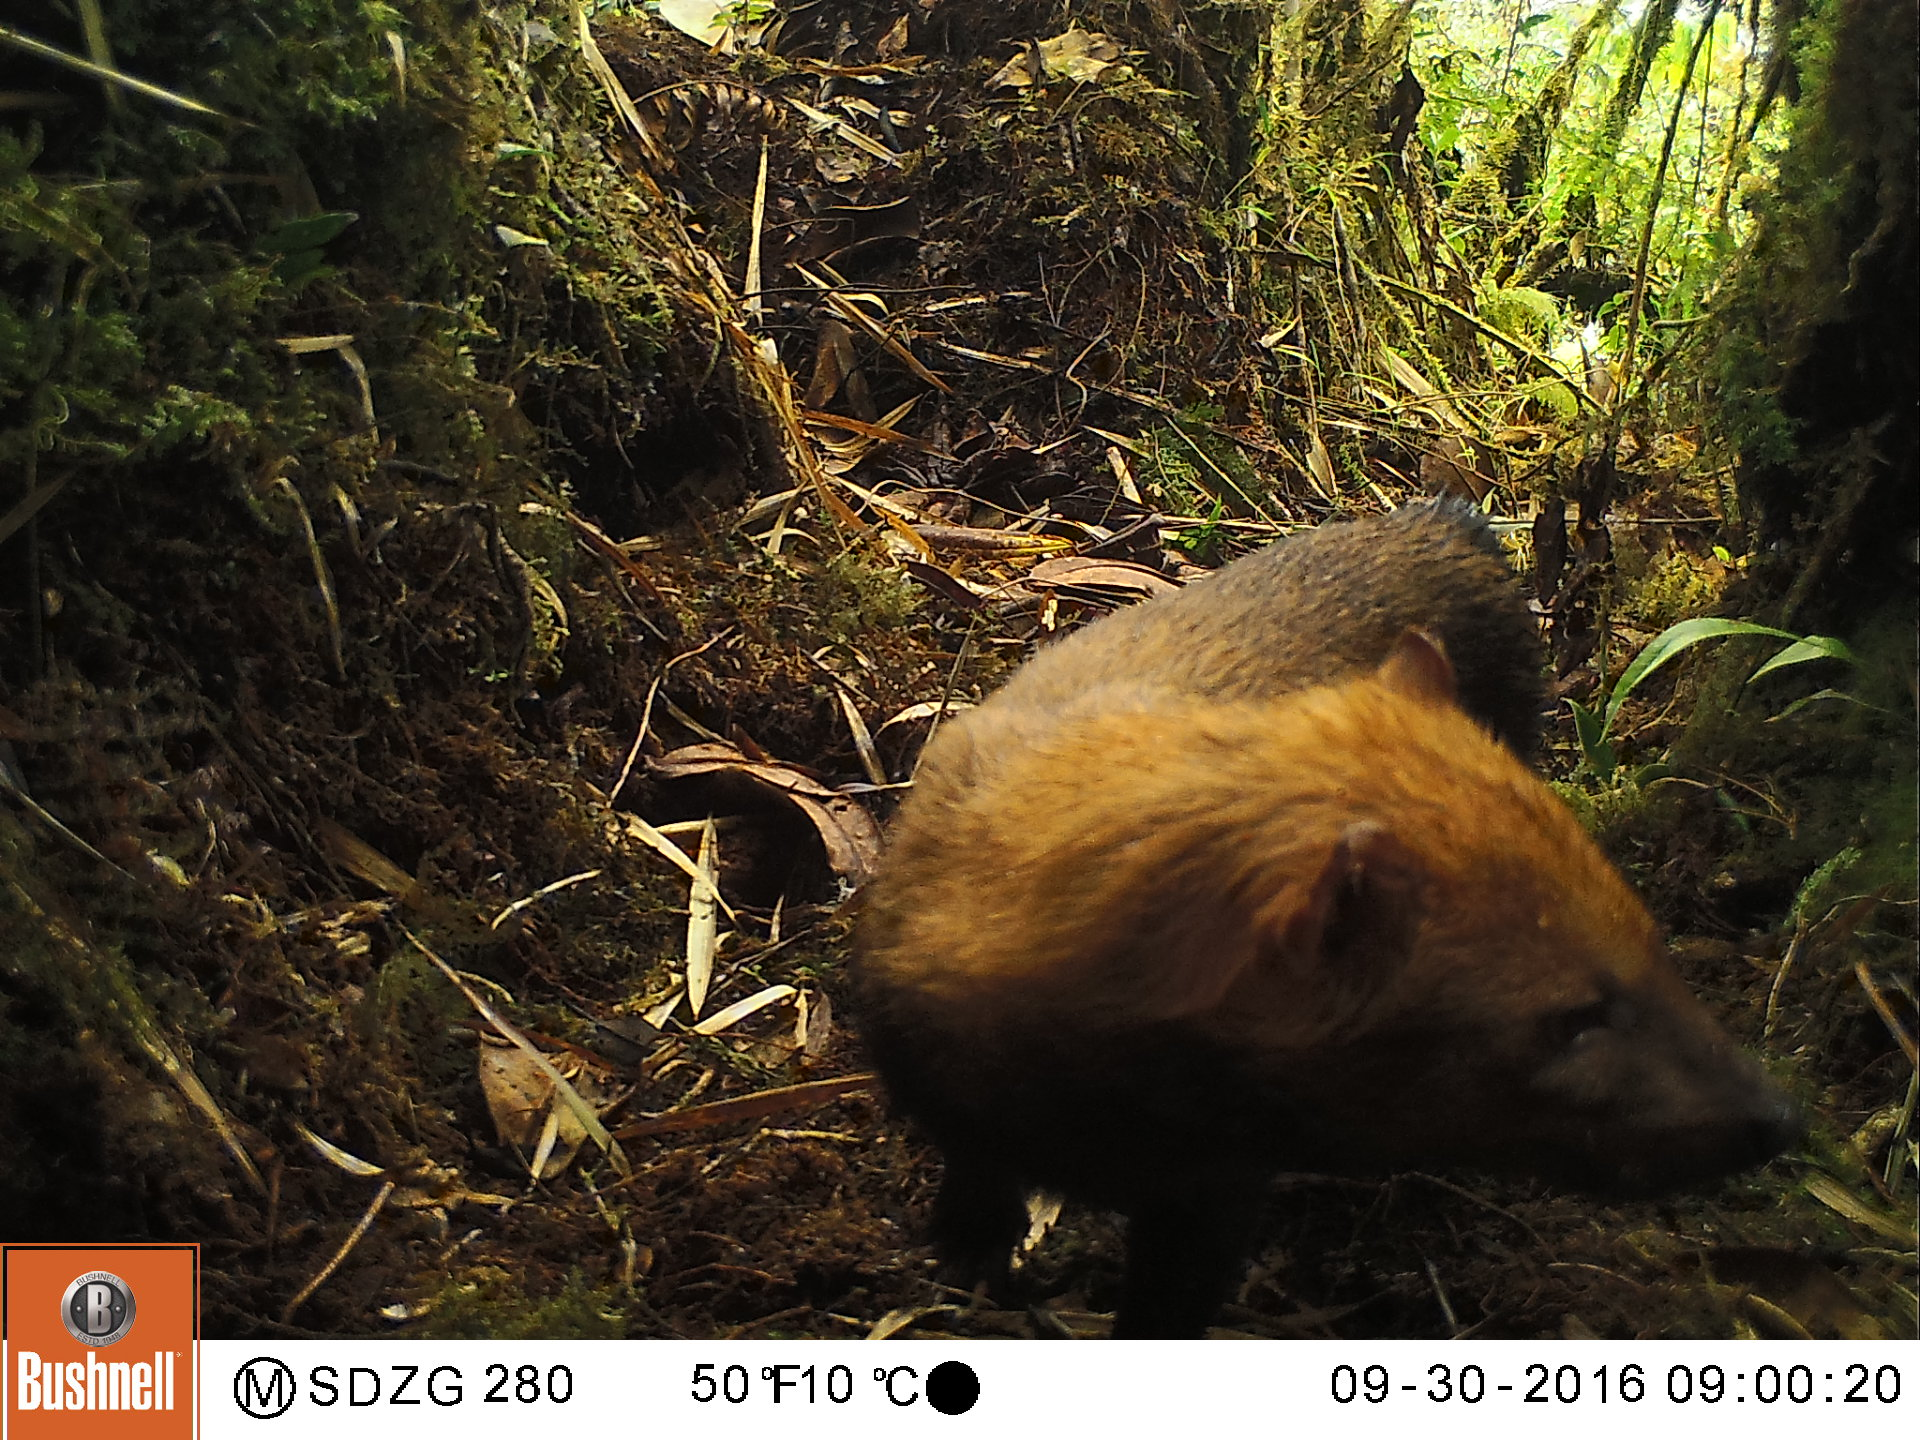 A camera trap photo of a bush dog in the cloud forest at an elevation of 2800m (9200').